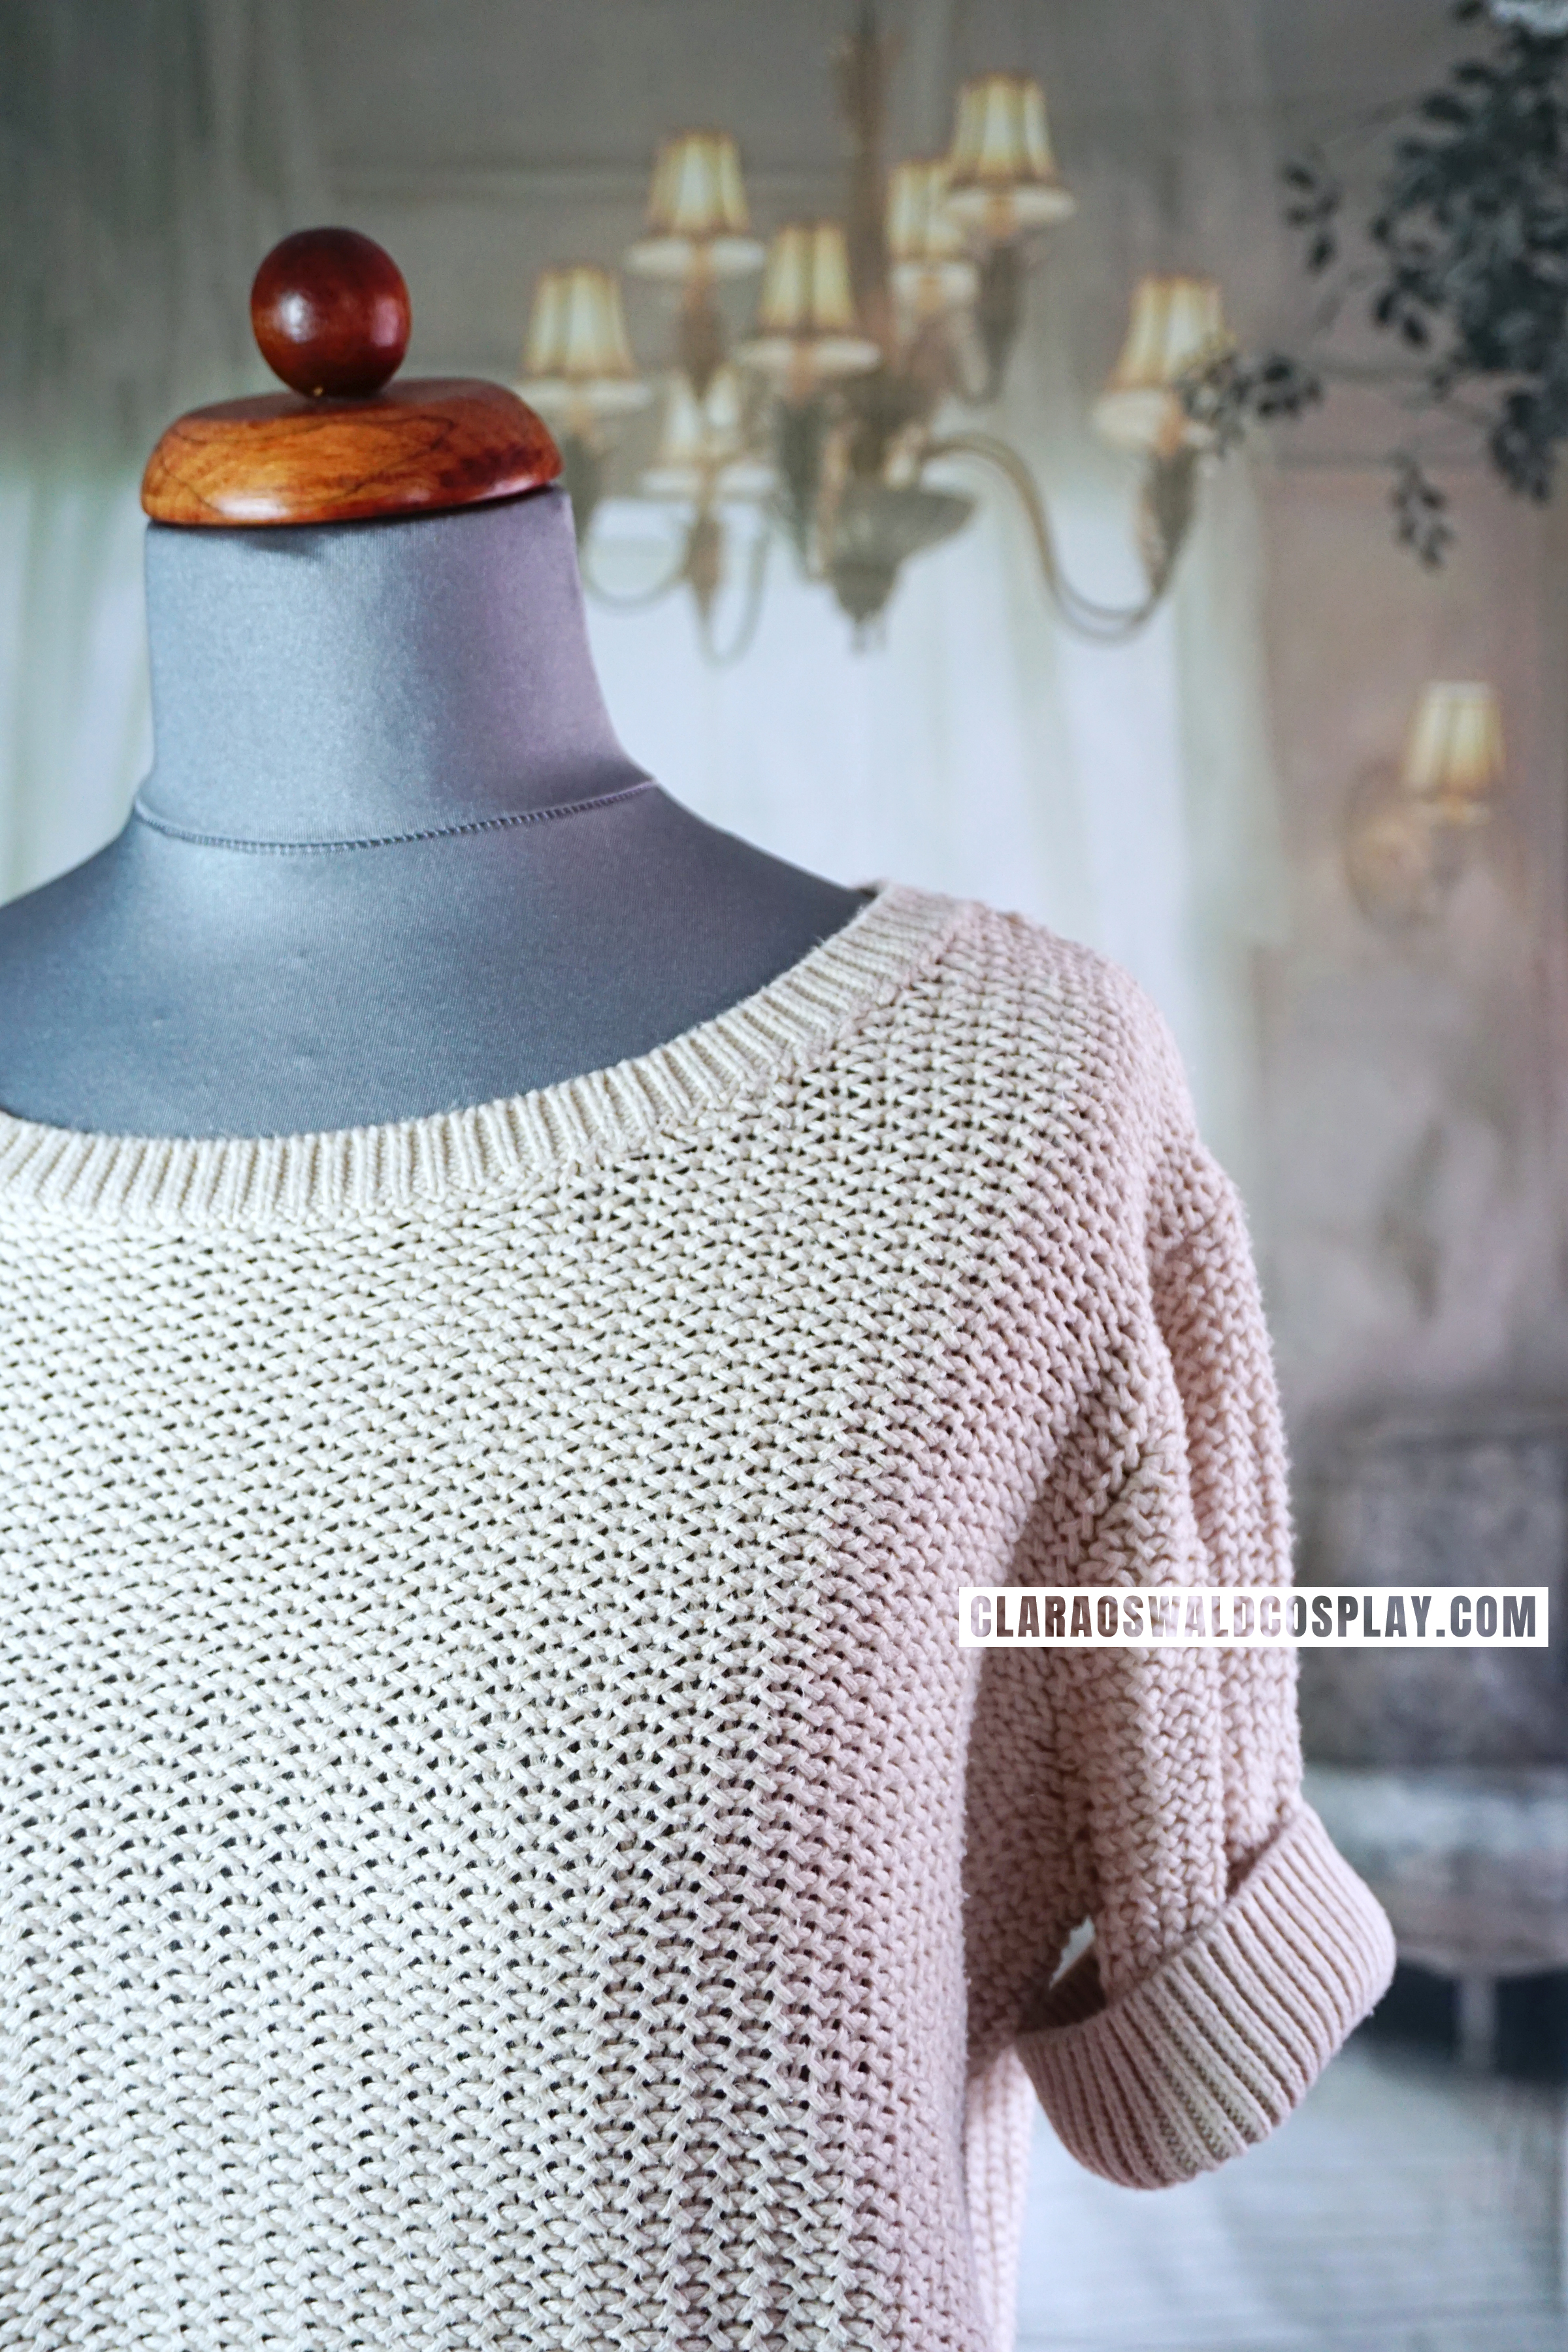 A closer look at the GAP Knit Jumper